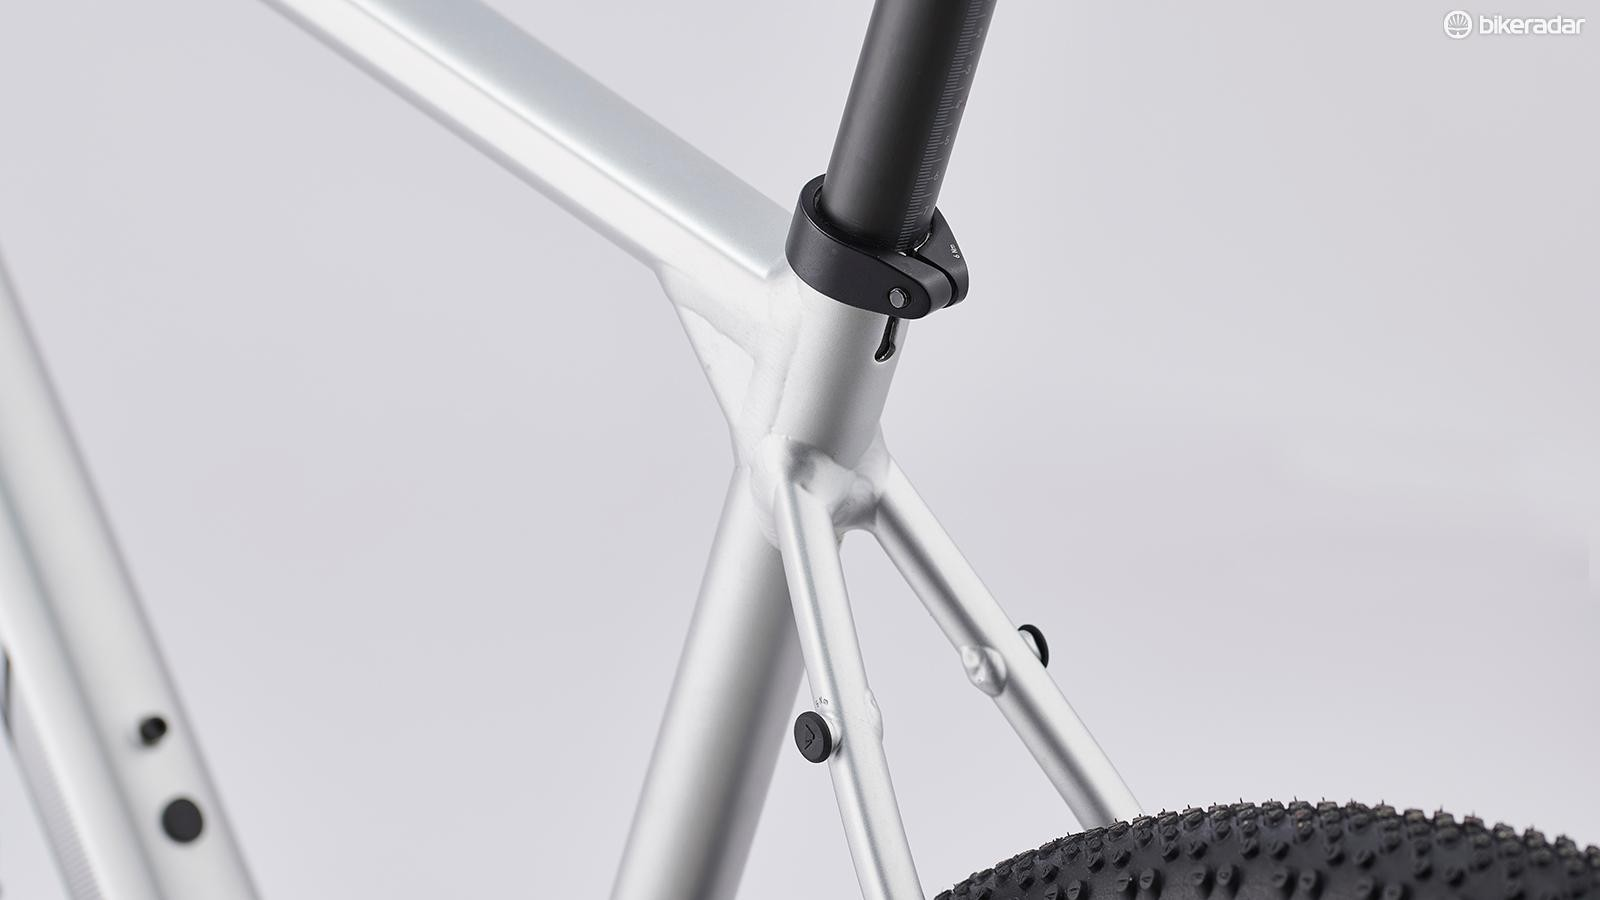 The saddle sits atop a VCLS carbon shock-absorbing seatpost